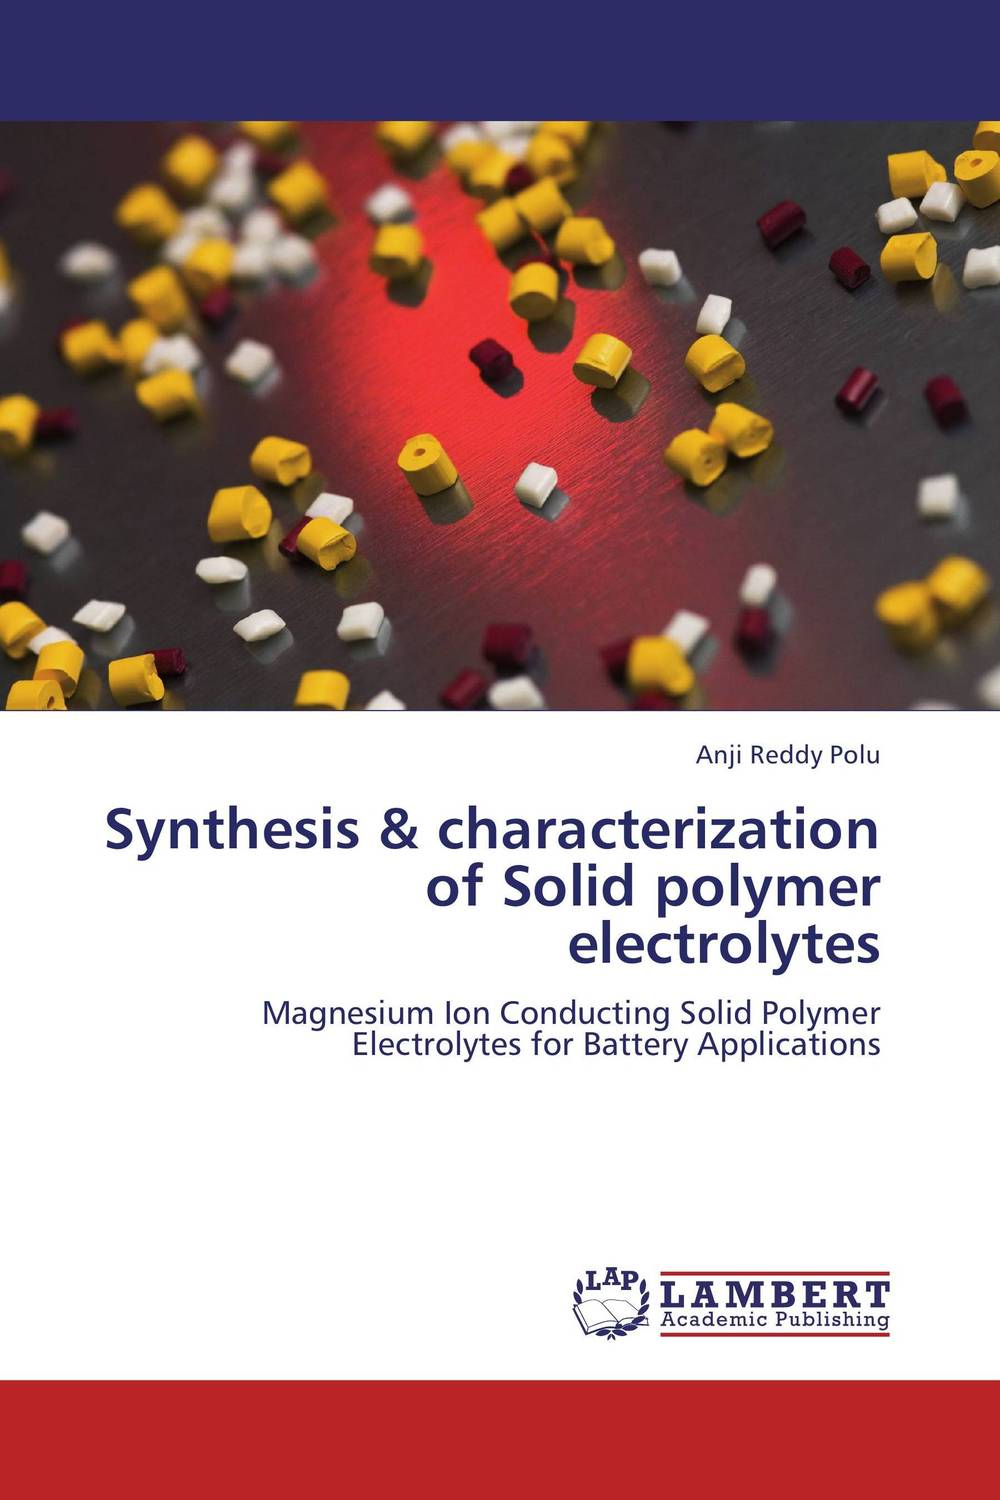 Synthesis & characterization of Solid polymer electrolytes purnima sareen sundeep kumar and rakesh singh molecular and pathological characterization of slow rusting in wheat